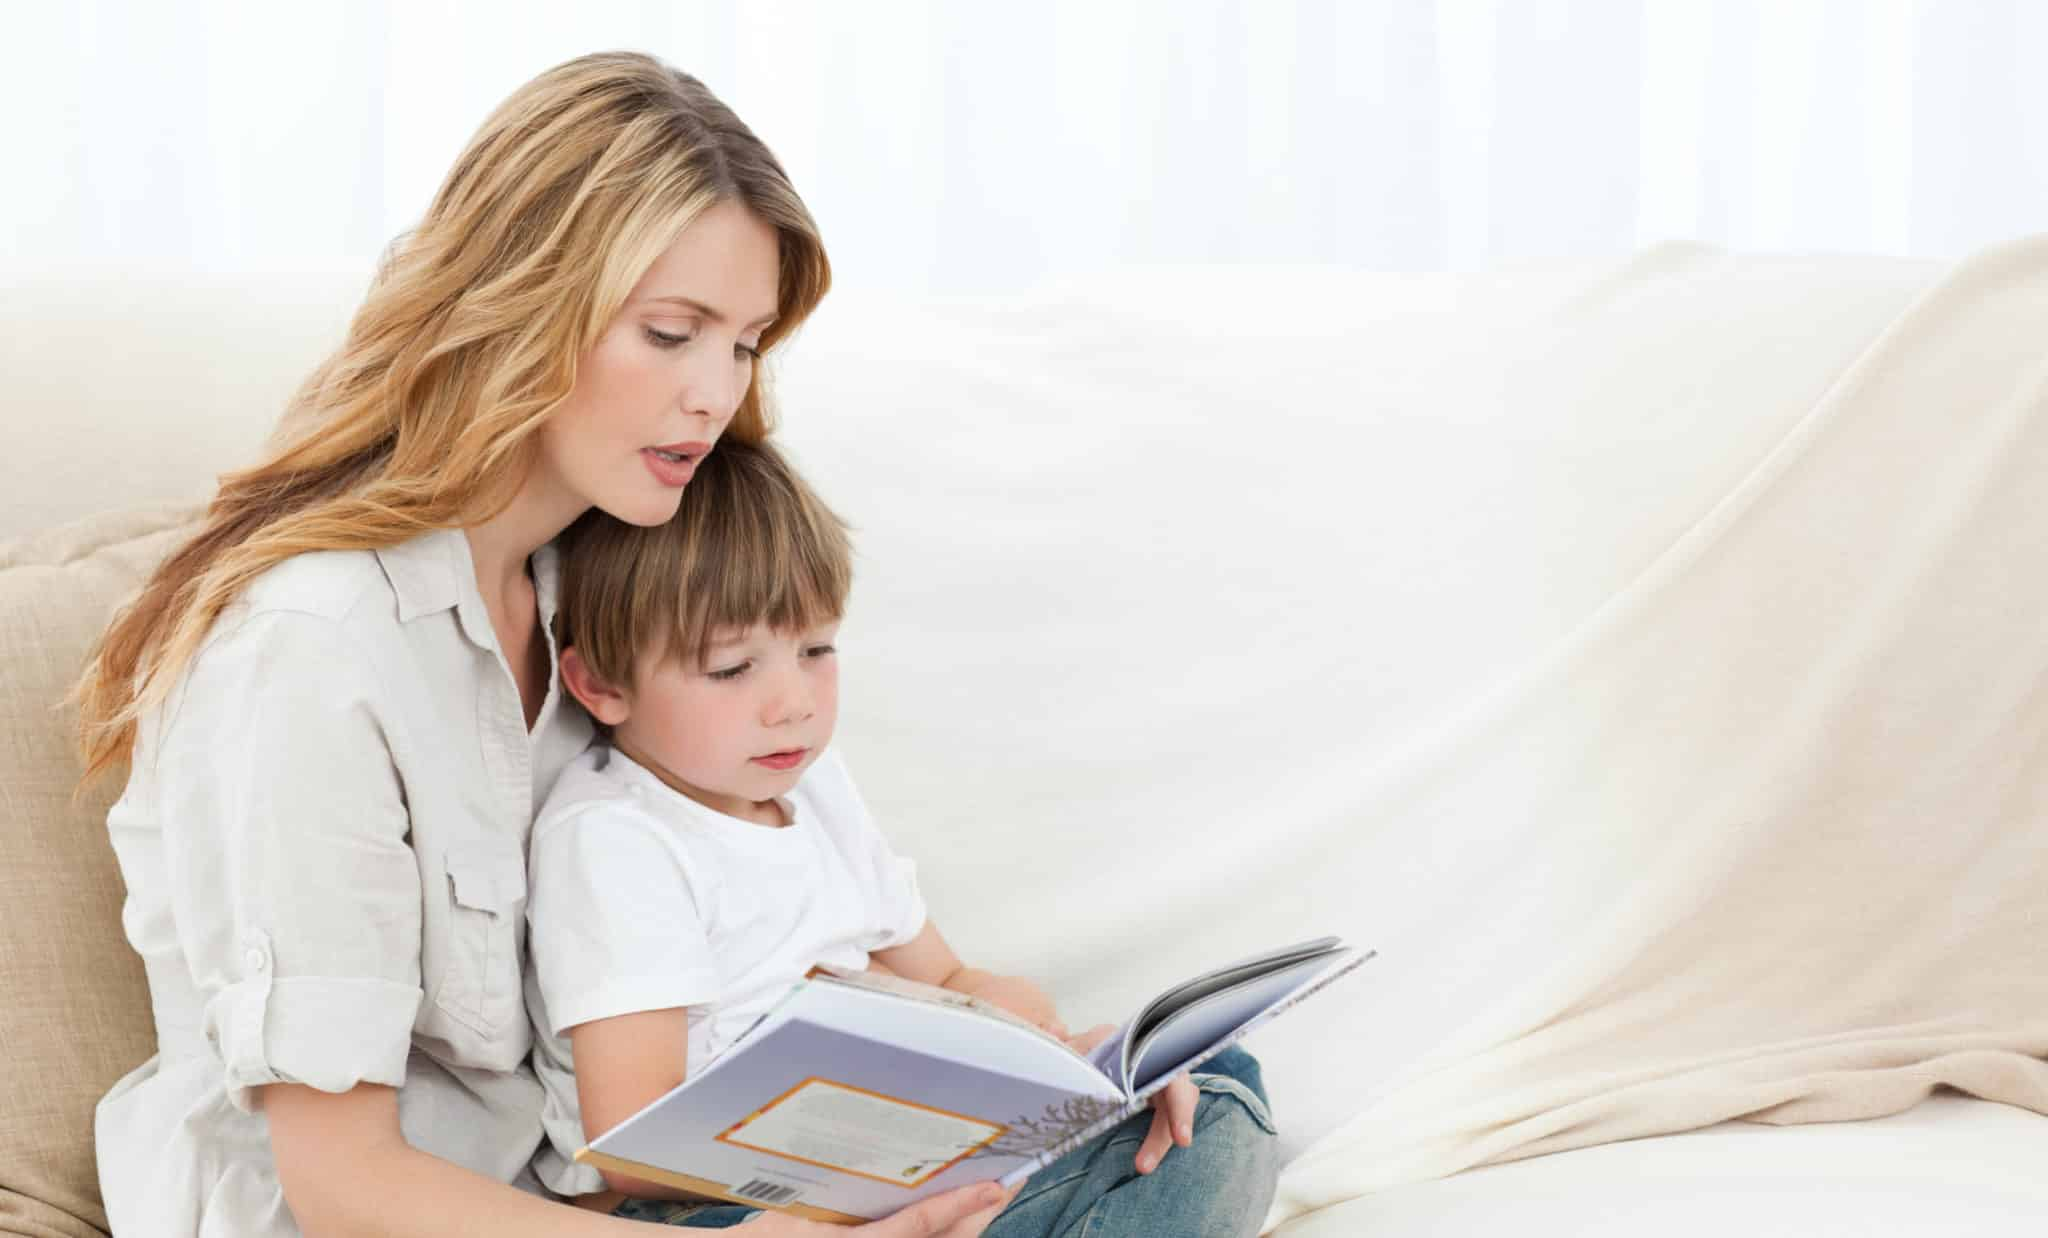 mother reads to a child to help build his language development